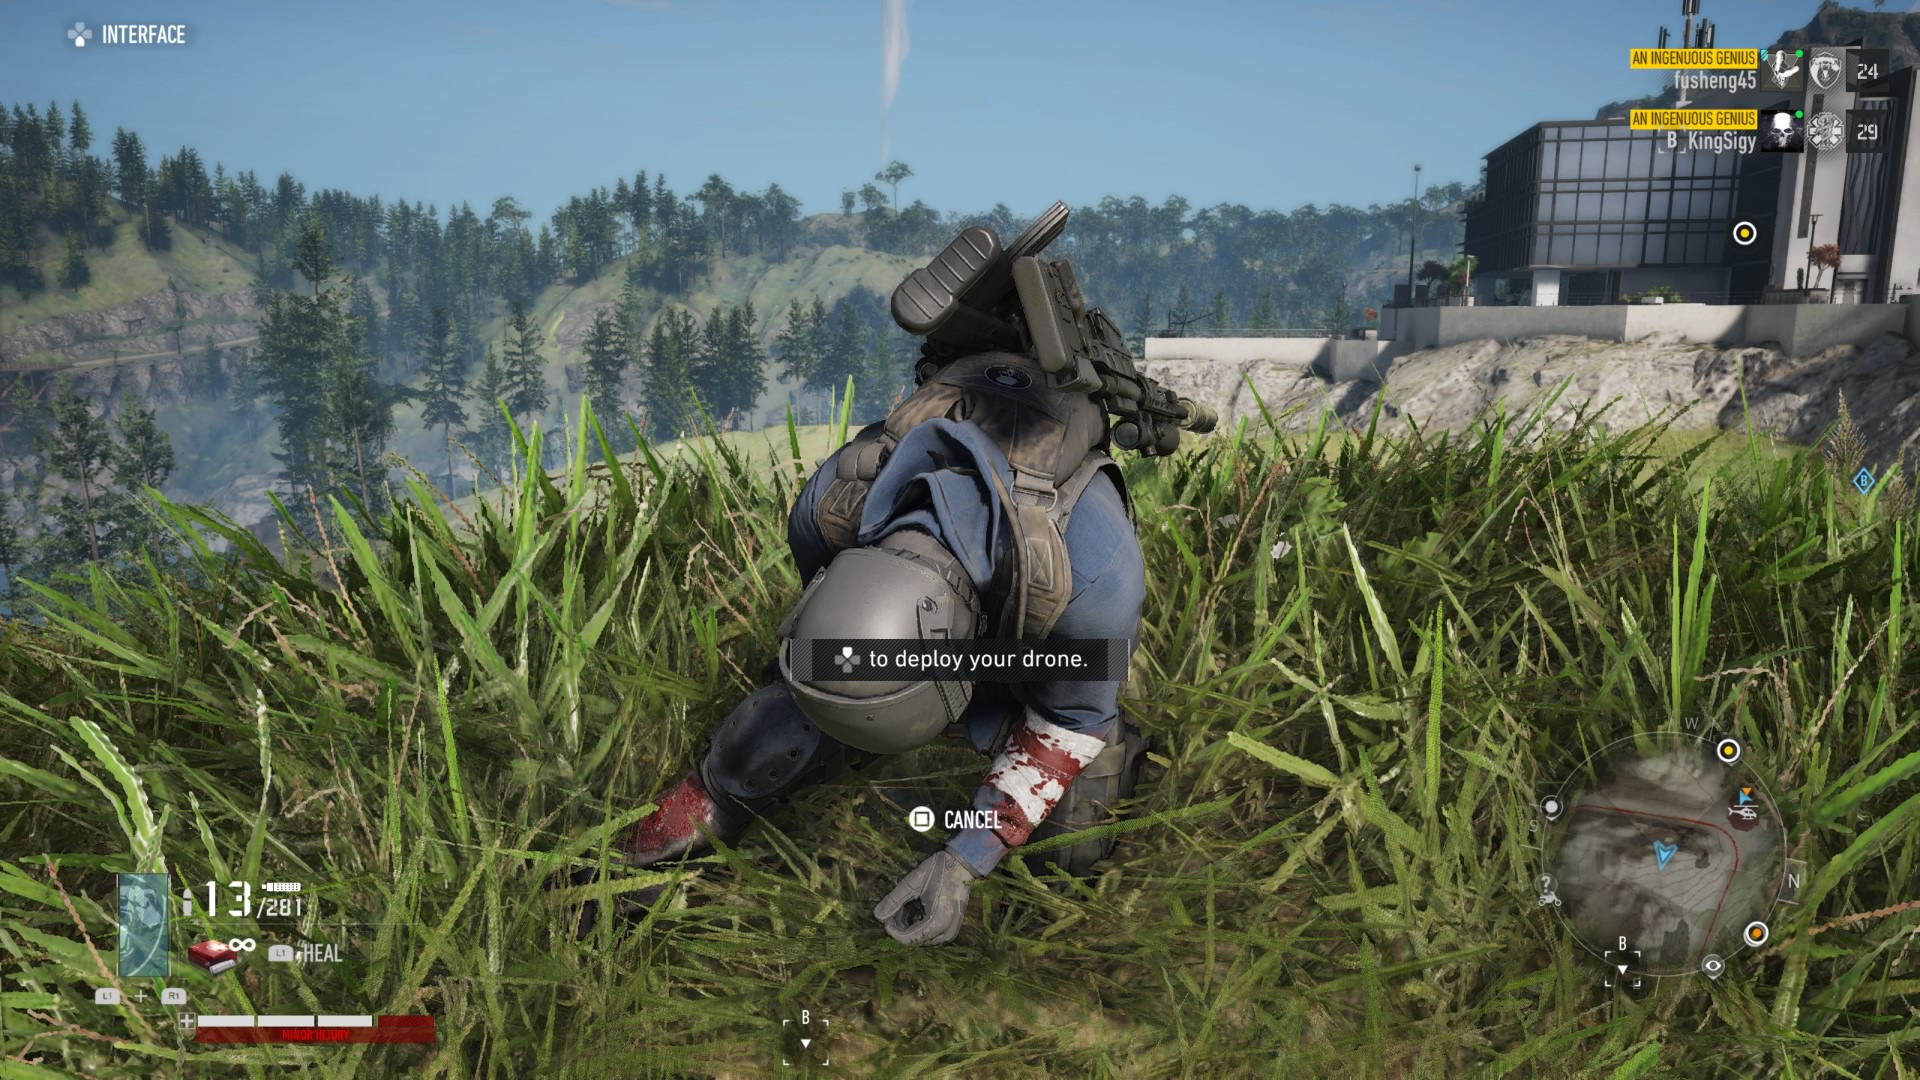 GHOST RECON: BREAKPOINT Shares Gameplay Launch Trailer